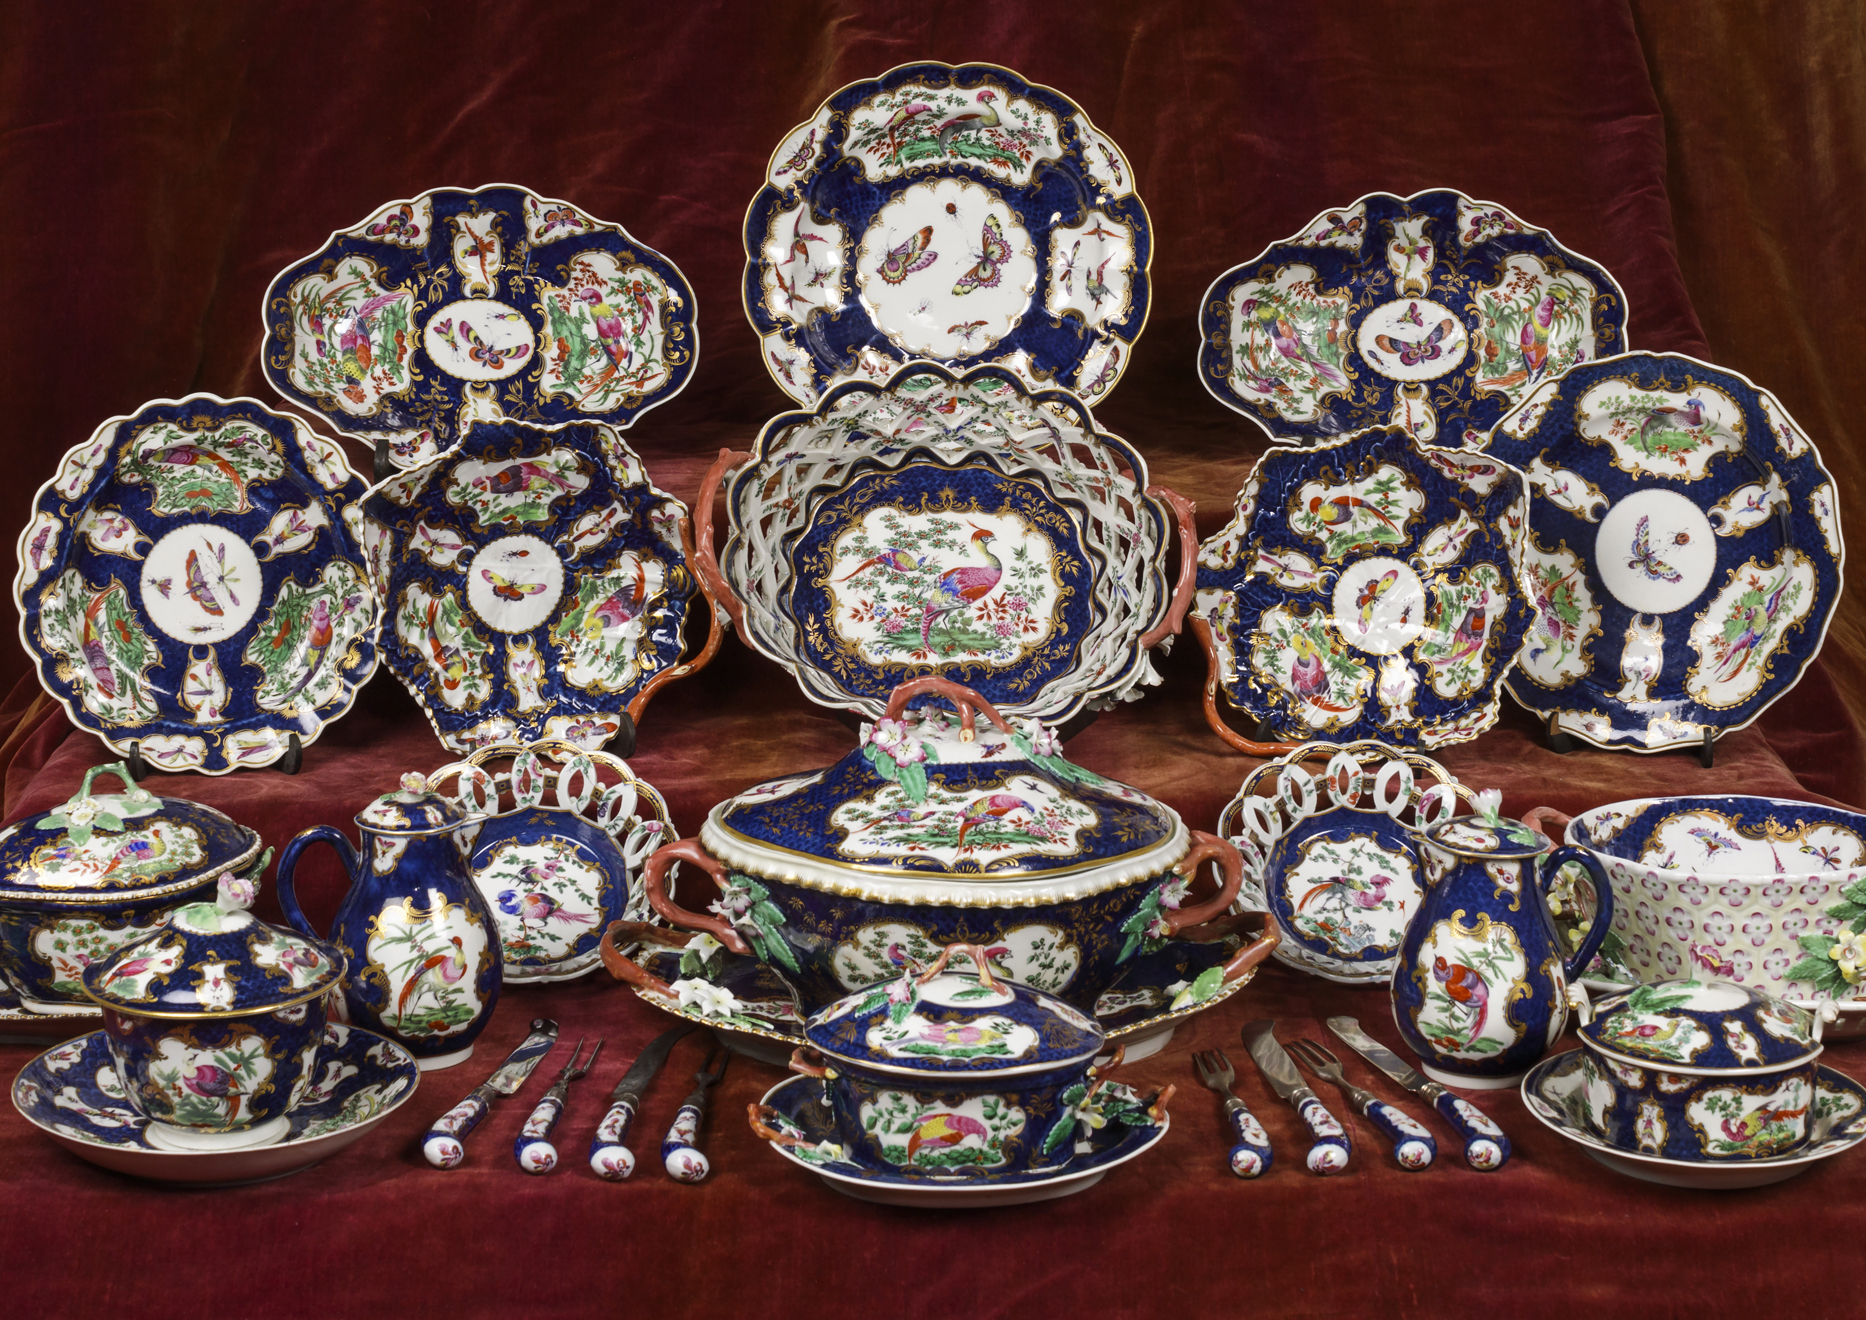 Dinner and dessert china decorated in the Lady Betty Cobbe pattern, soft-paste Worcester porcelain, Cobbe Collection